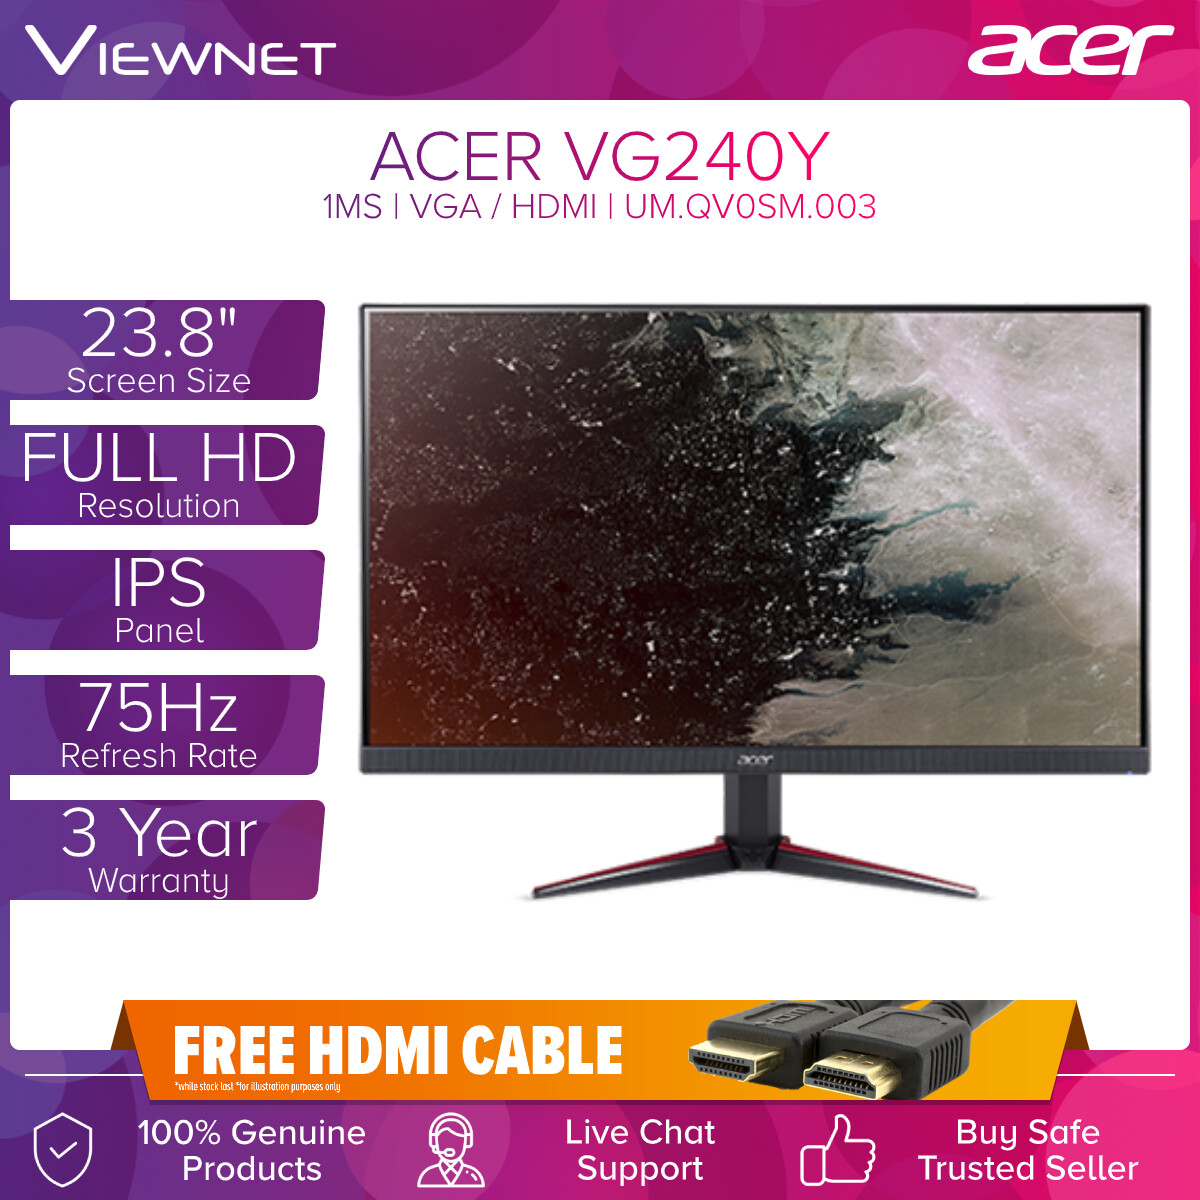 ACER NITRO VG240Y 23.8 IPS 75HZ 1MS FHD AMD FREESYNC GAMING MONITOR WITH VGA HDMIx2 AUDIO IN/OUT